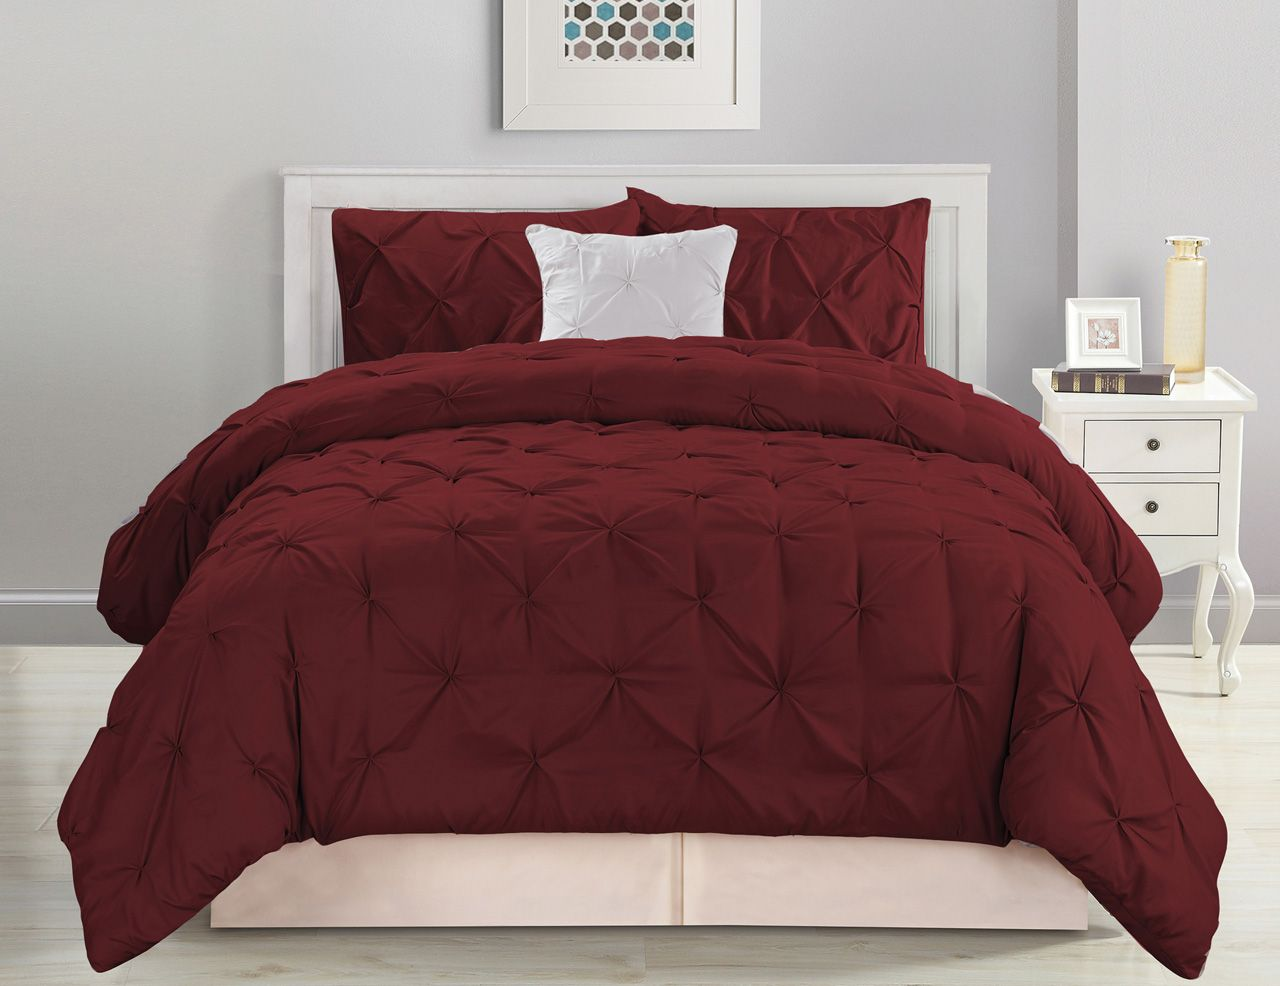 4 Piece Pinched Pleat Burgundy Comforter Set Burgundy Bedroom